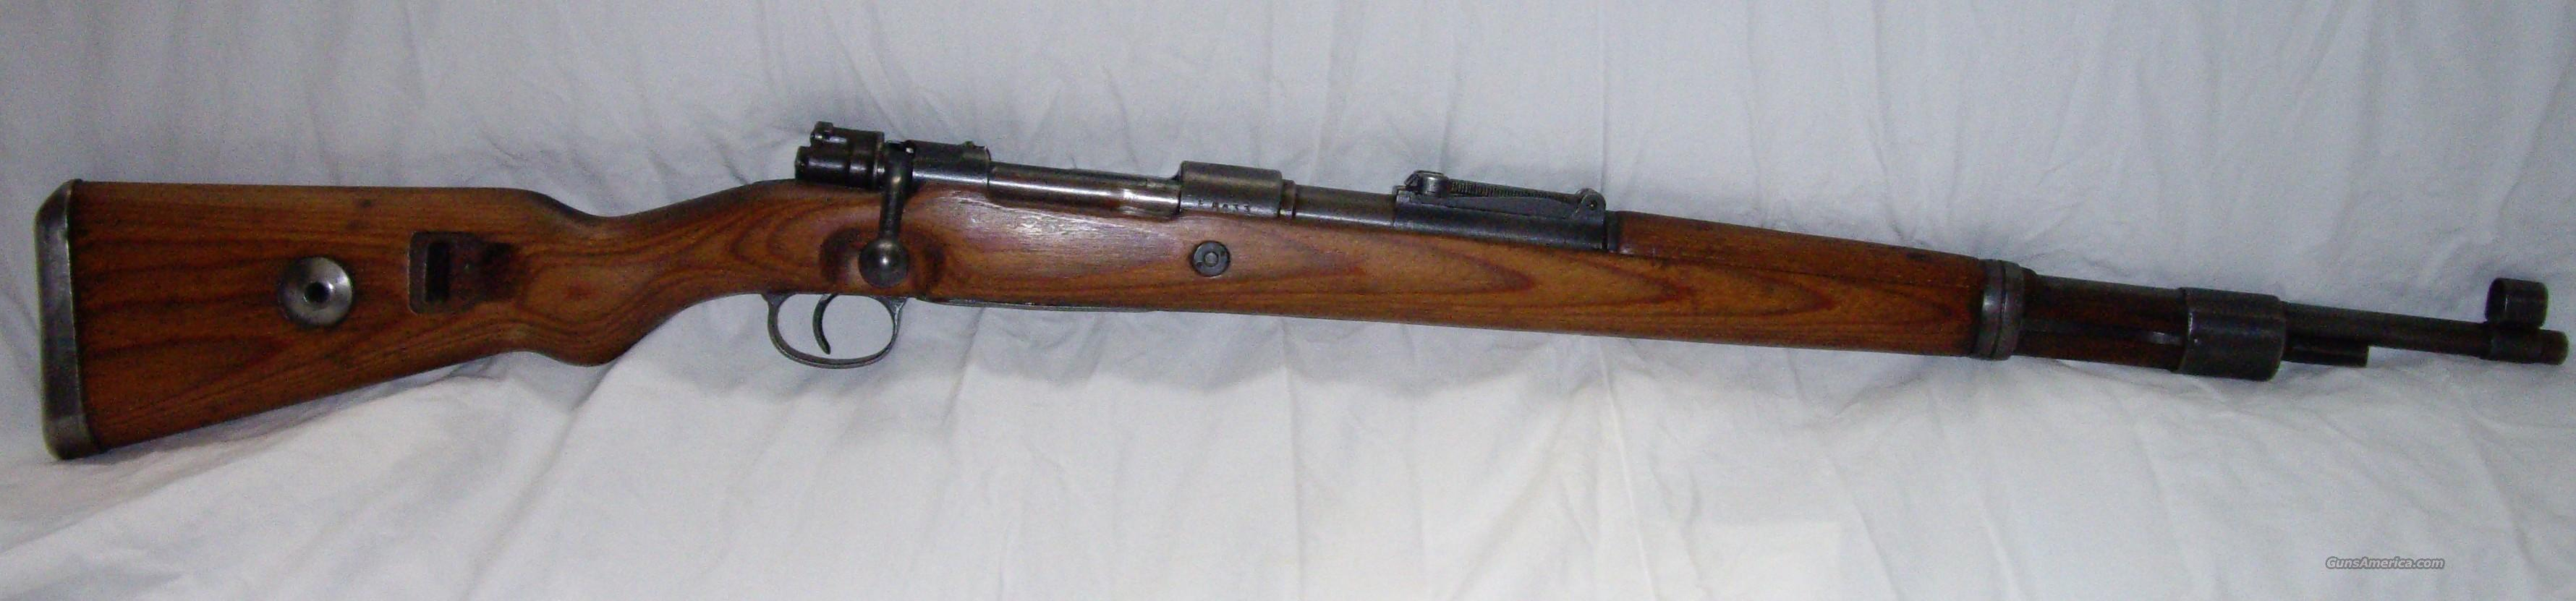 "Yugo Mauser ""Prezduce 44"" in 8mm  Guns > Rifles > Mauser Rifles > German"